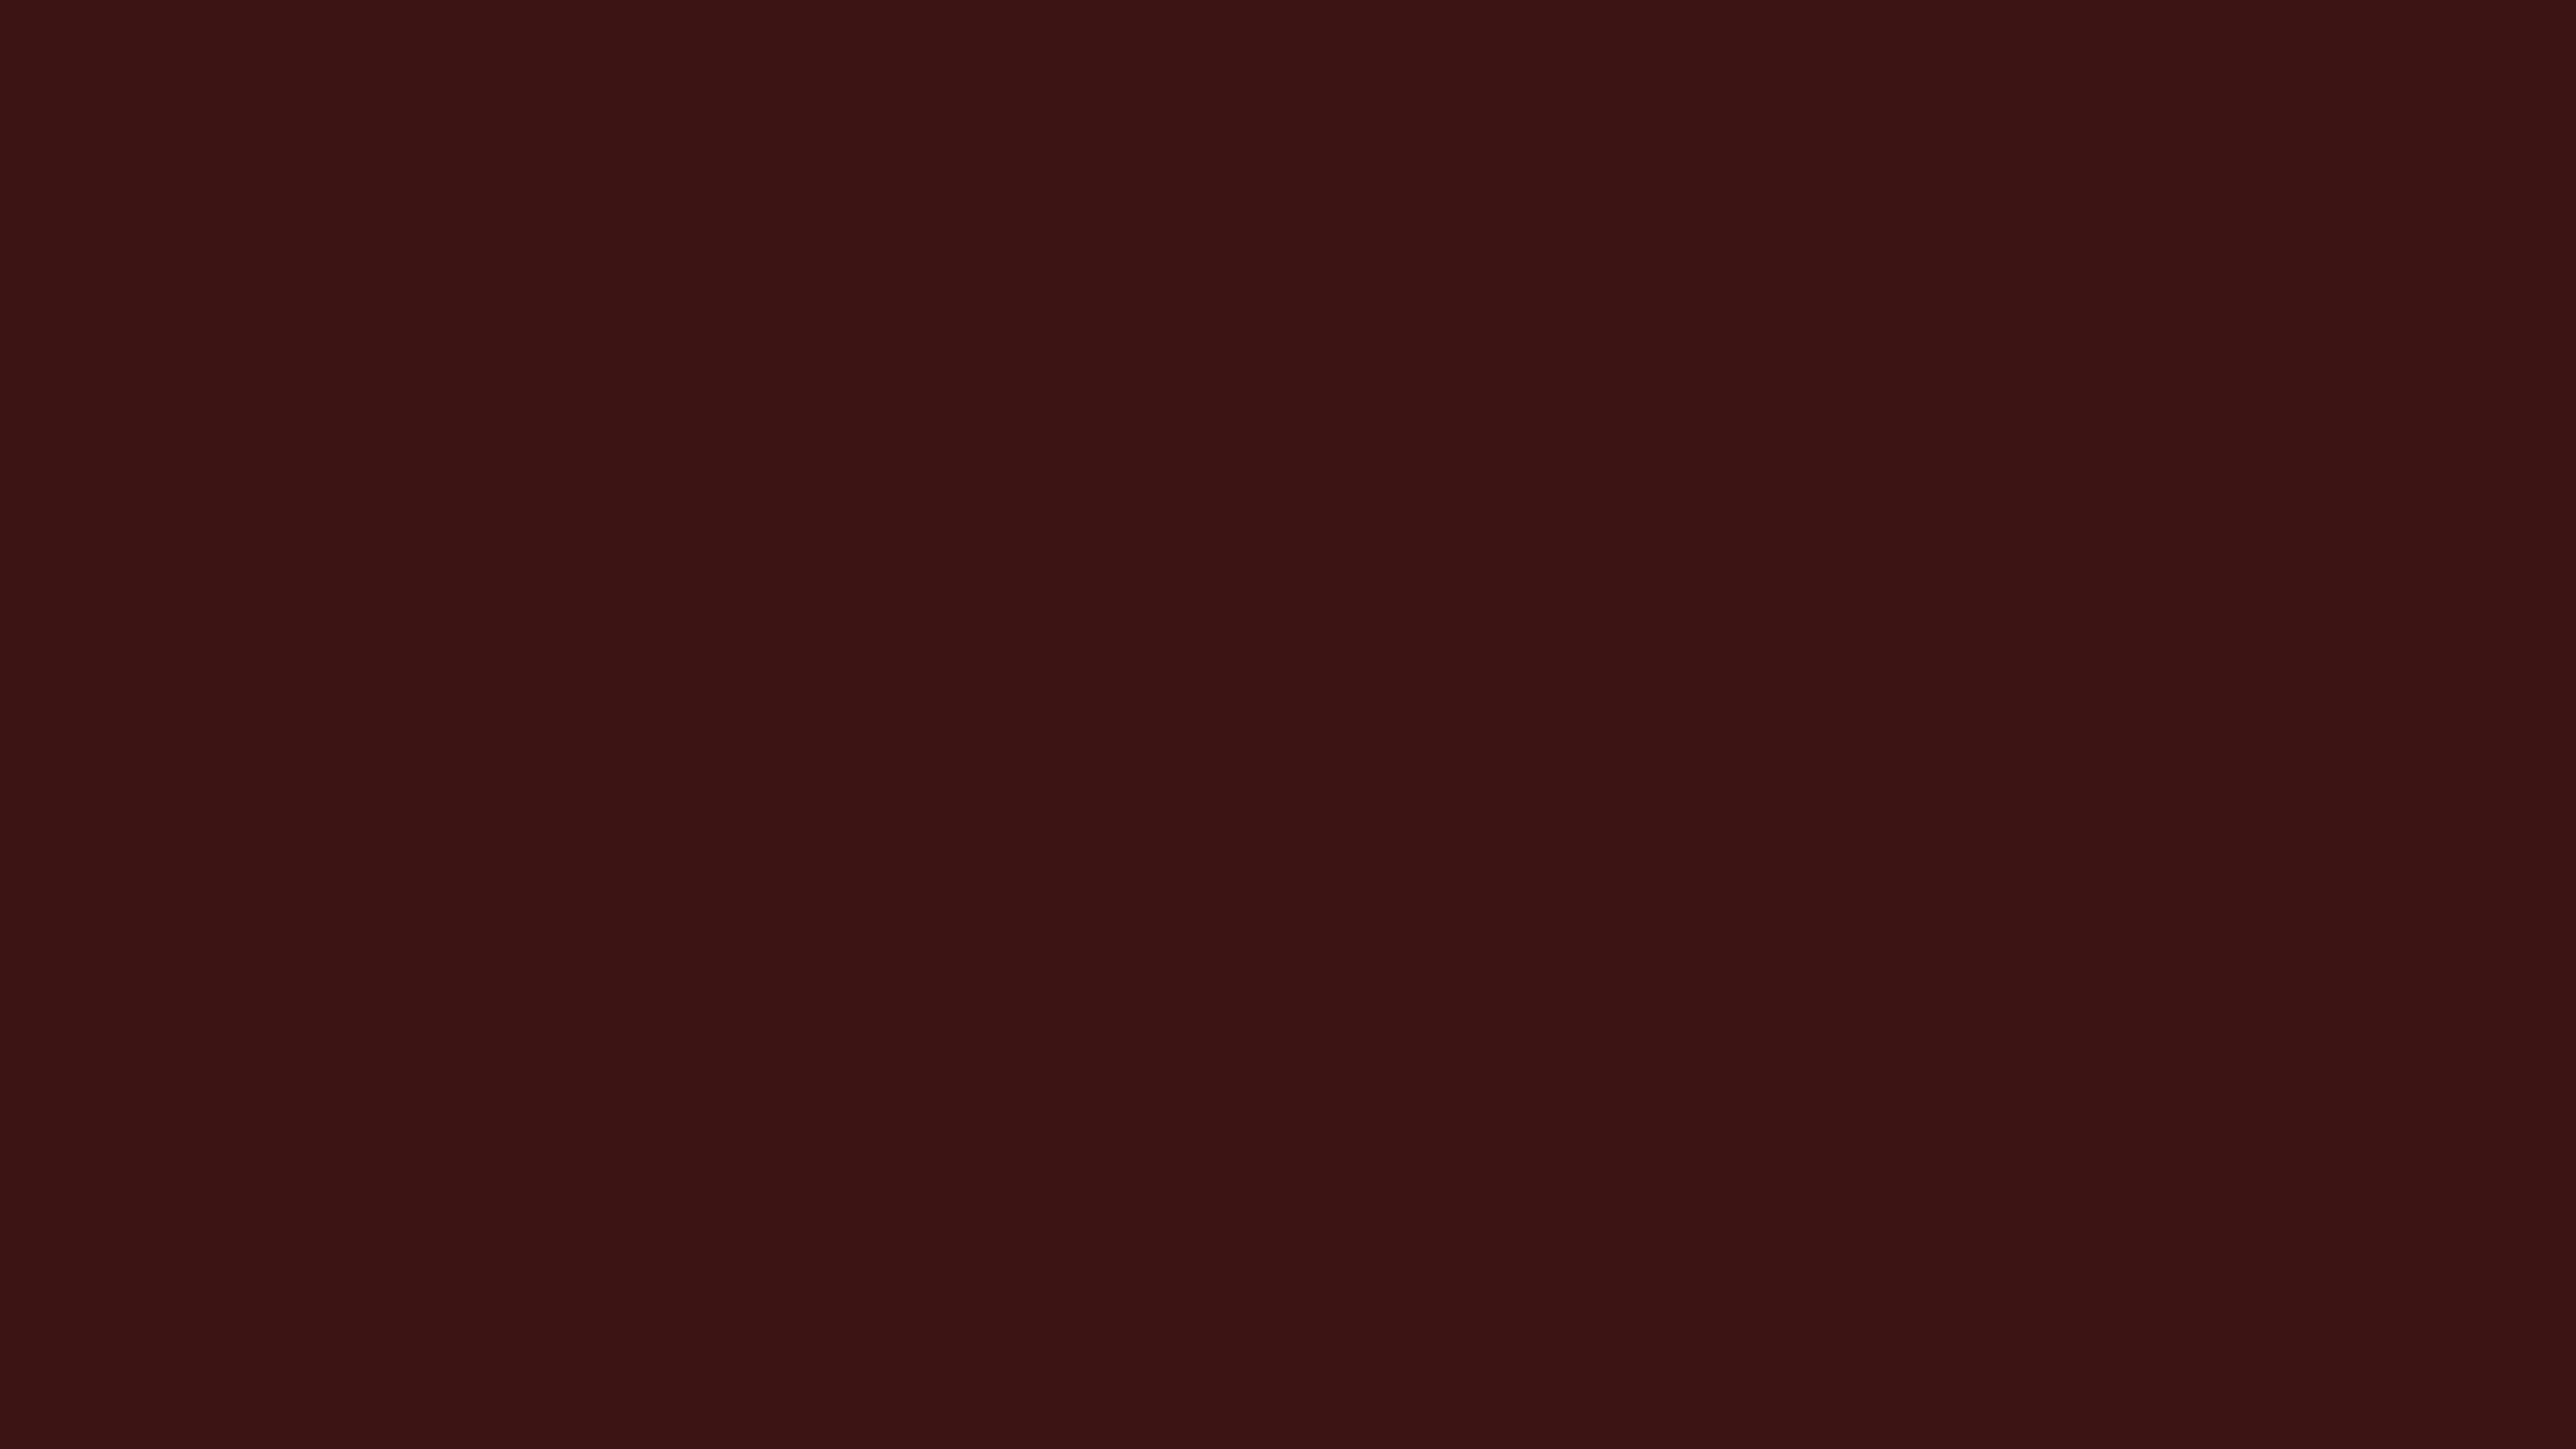 5120x2880 Dark Sienna Solid Color Background